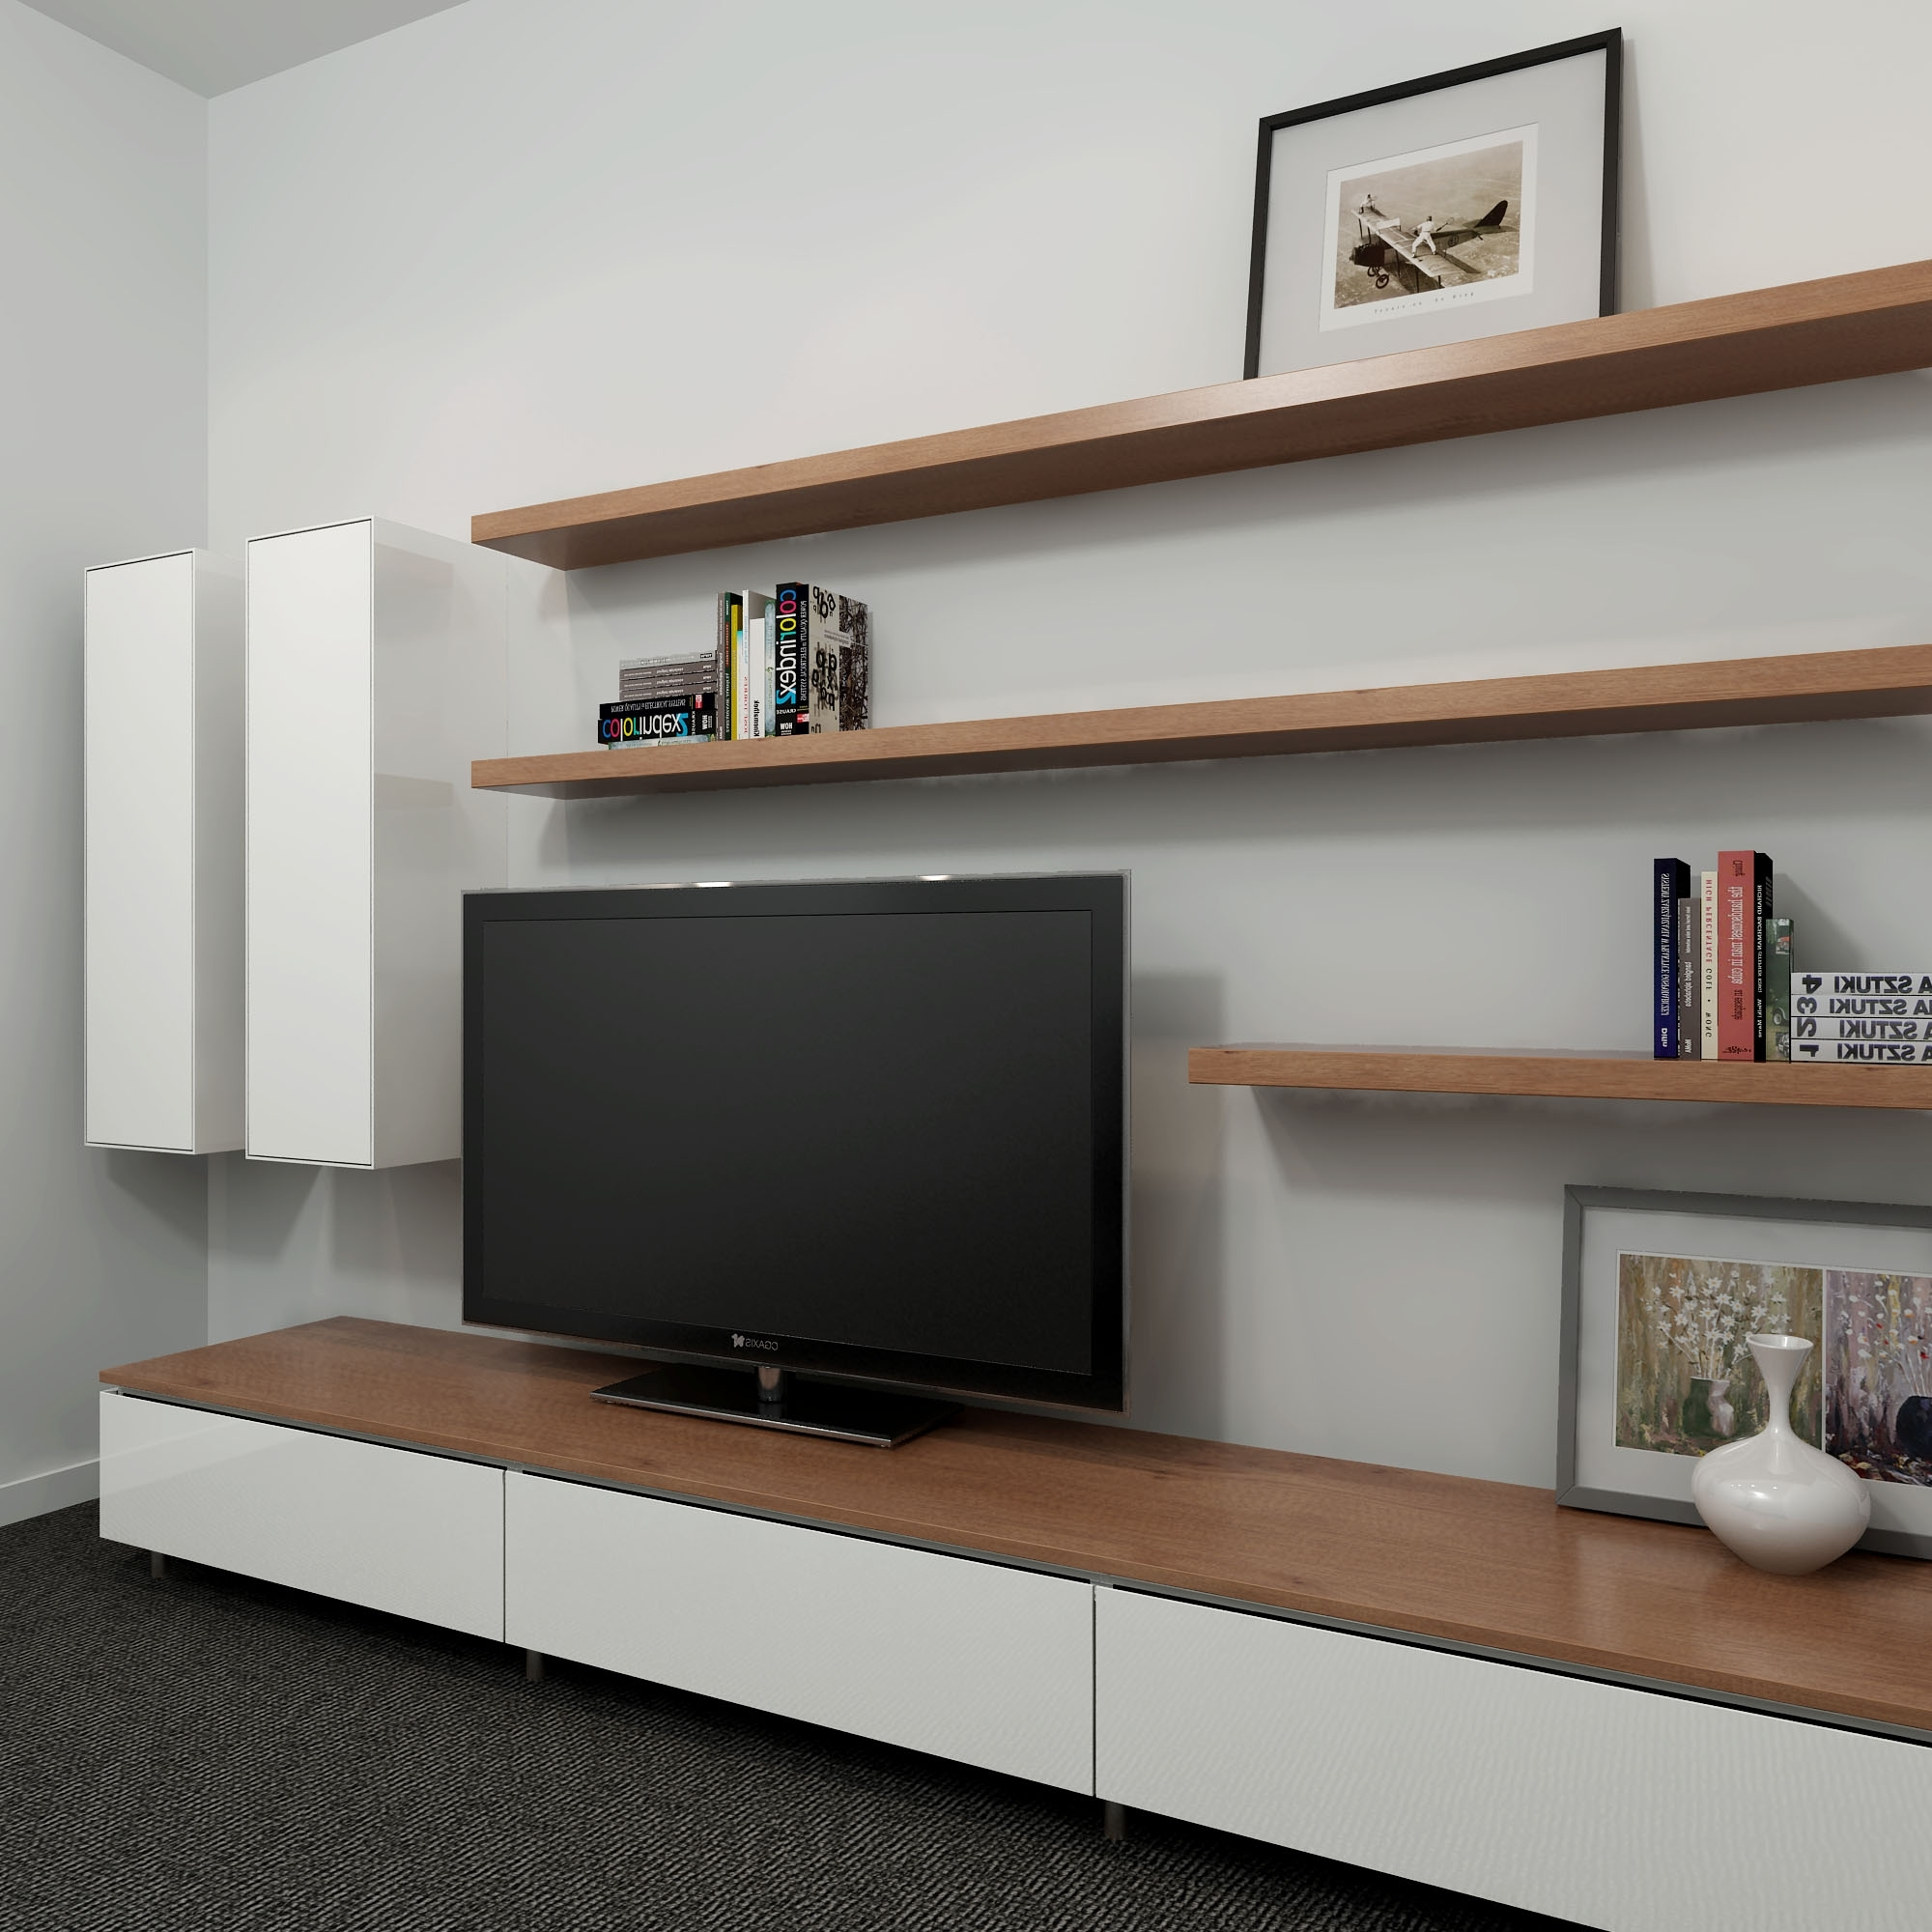 Top Well Liked Wall Unit Design Tv Cabinet Shelves Units Ideas Long Black Withintended Long Wall Shelves Canada Very Long Wall Shelves Bookshelves View Photos Bookshelves Tv Unit interior Wall Long Shelves